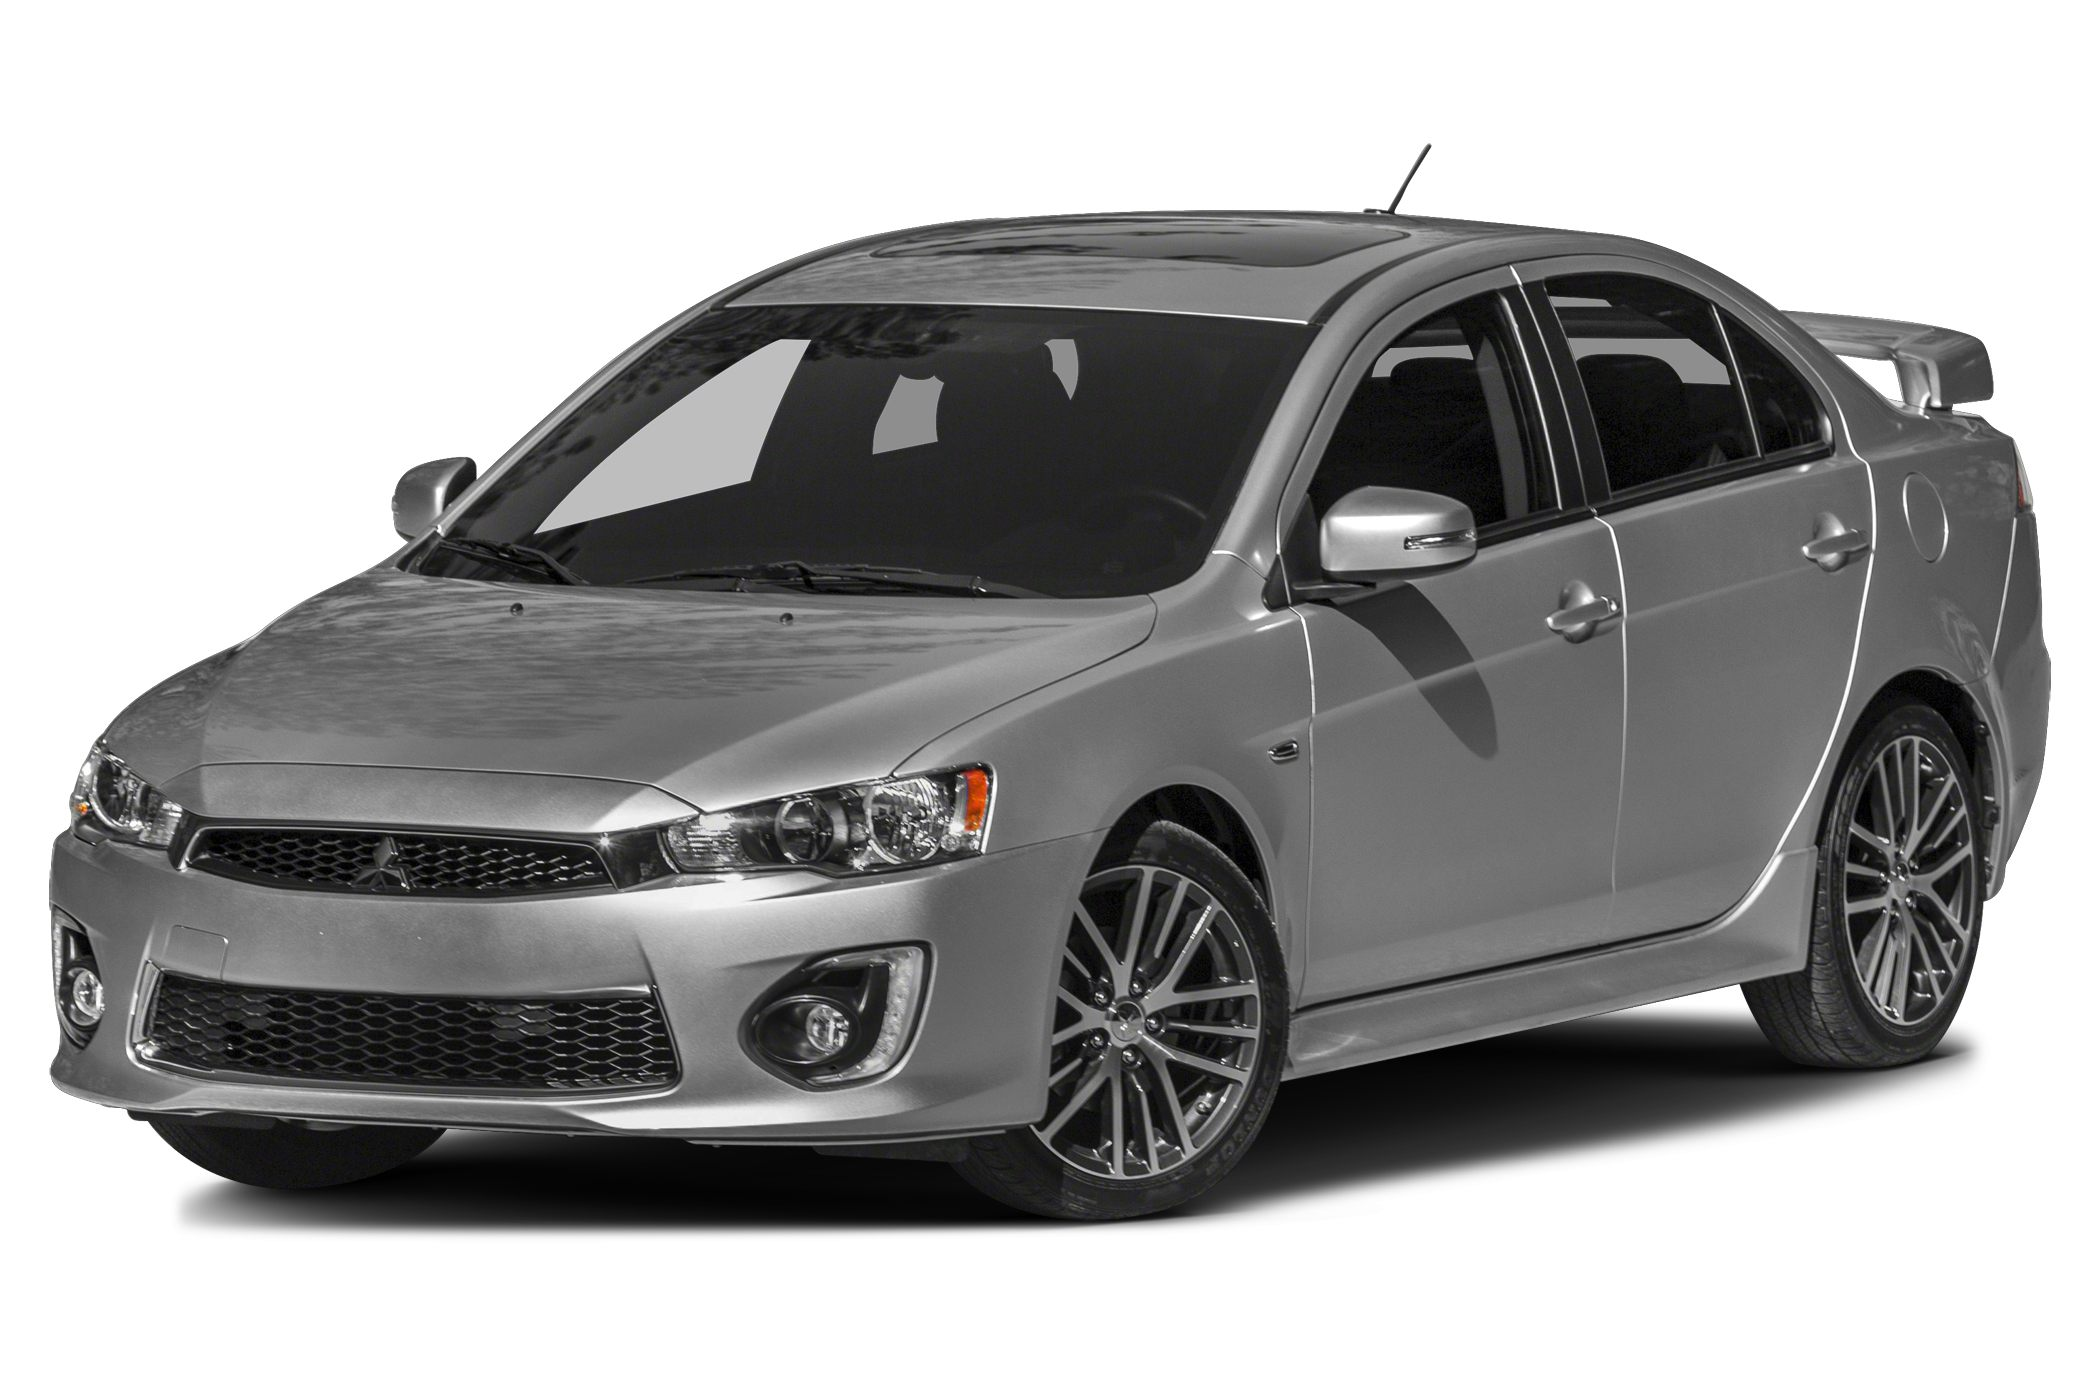 2016 mitsubishi lancer adds features loses ralliart. Black Bedroom Furniture Sets. Home Design Ideas